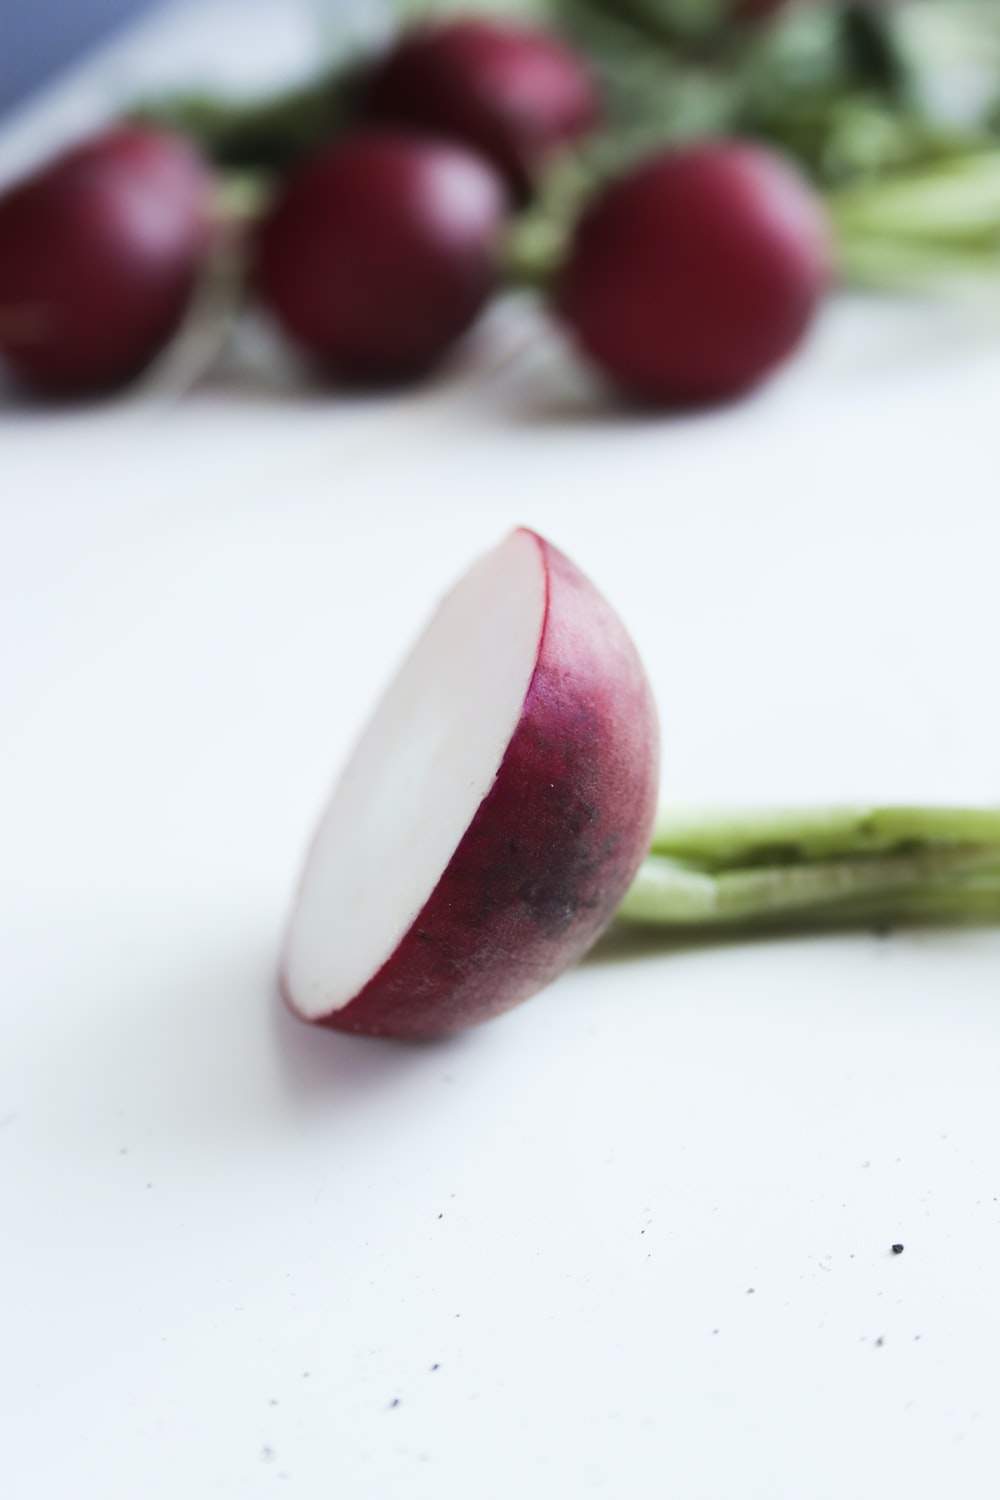 red and white fruit on white surface